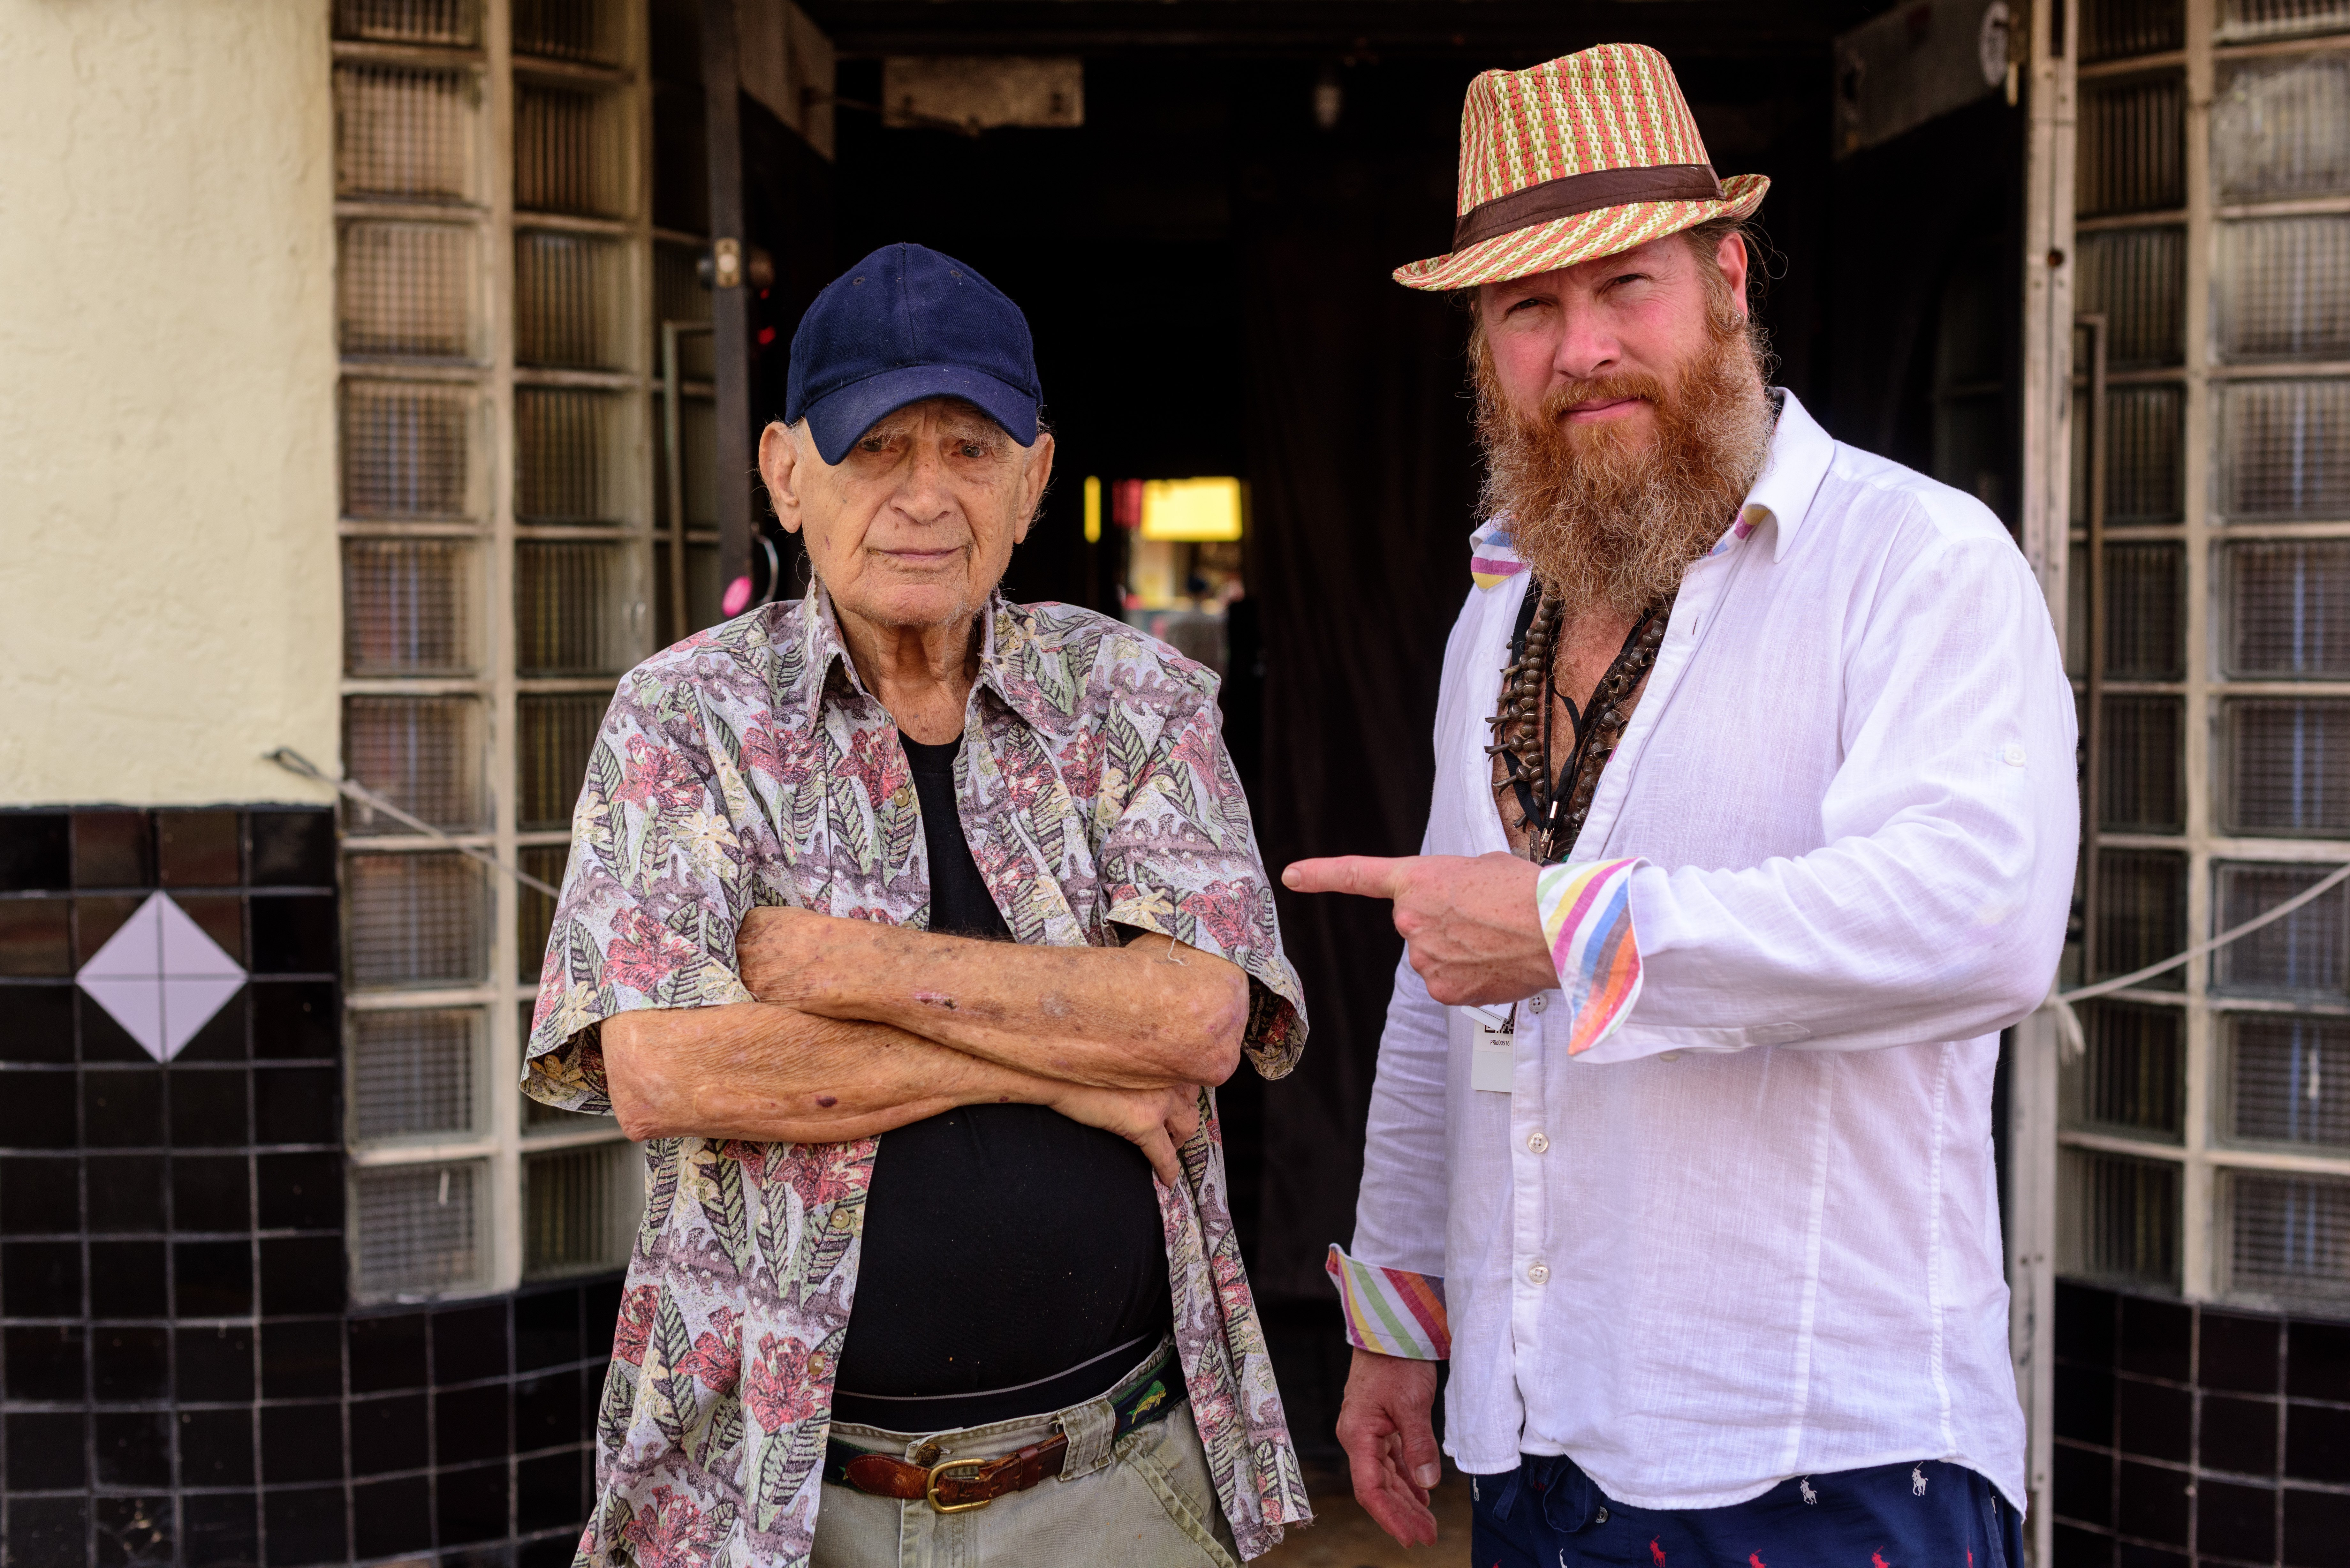 Gregory de la Haba and the 101-year-old owner Mac at Club Deuce